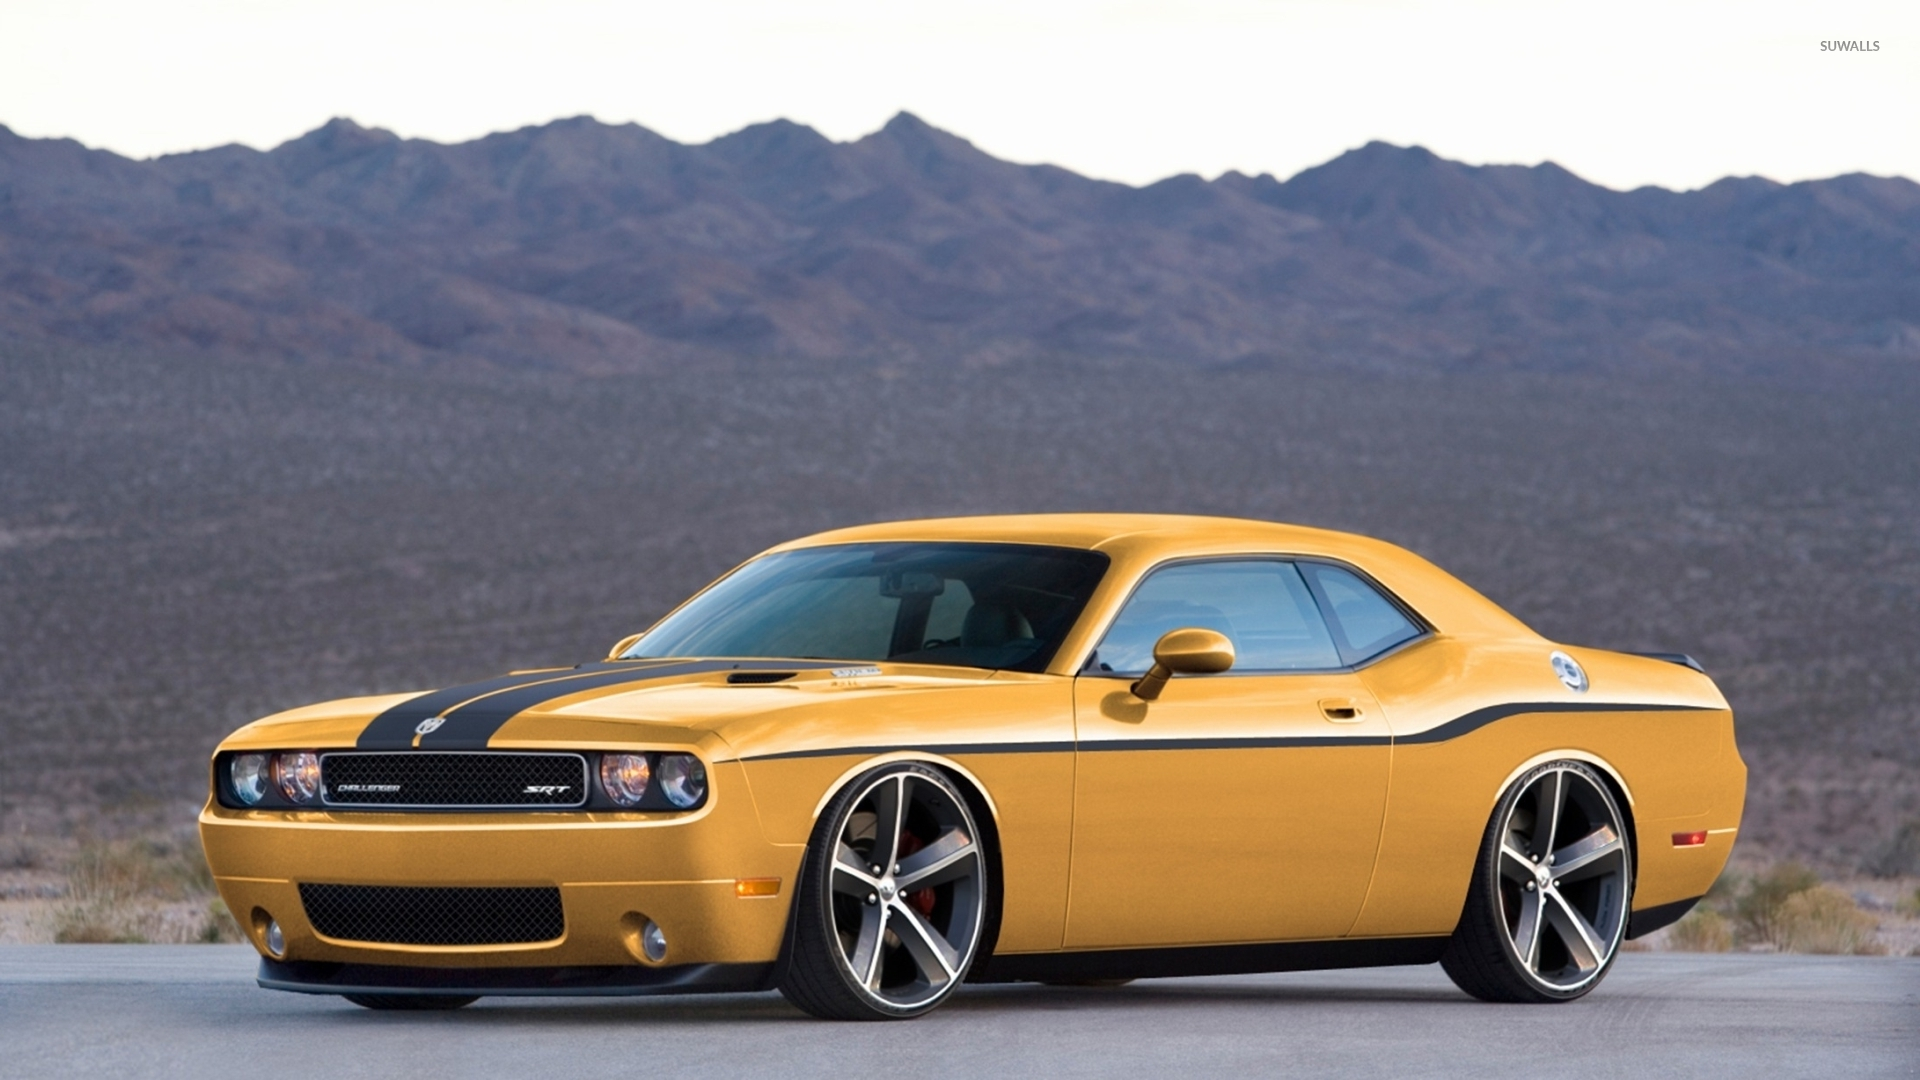 2015 Dodge Challenger SRT wallpaper   Car wallpapers   33542 1920x1080